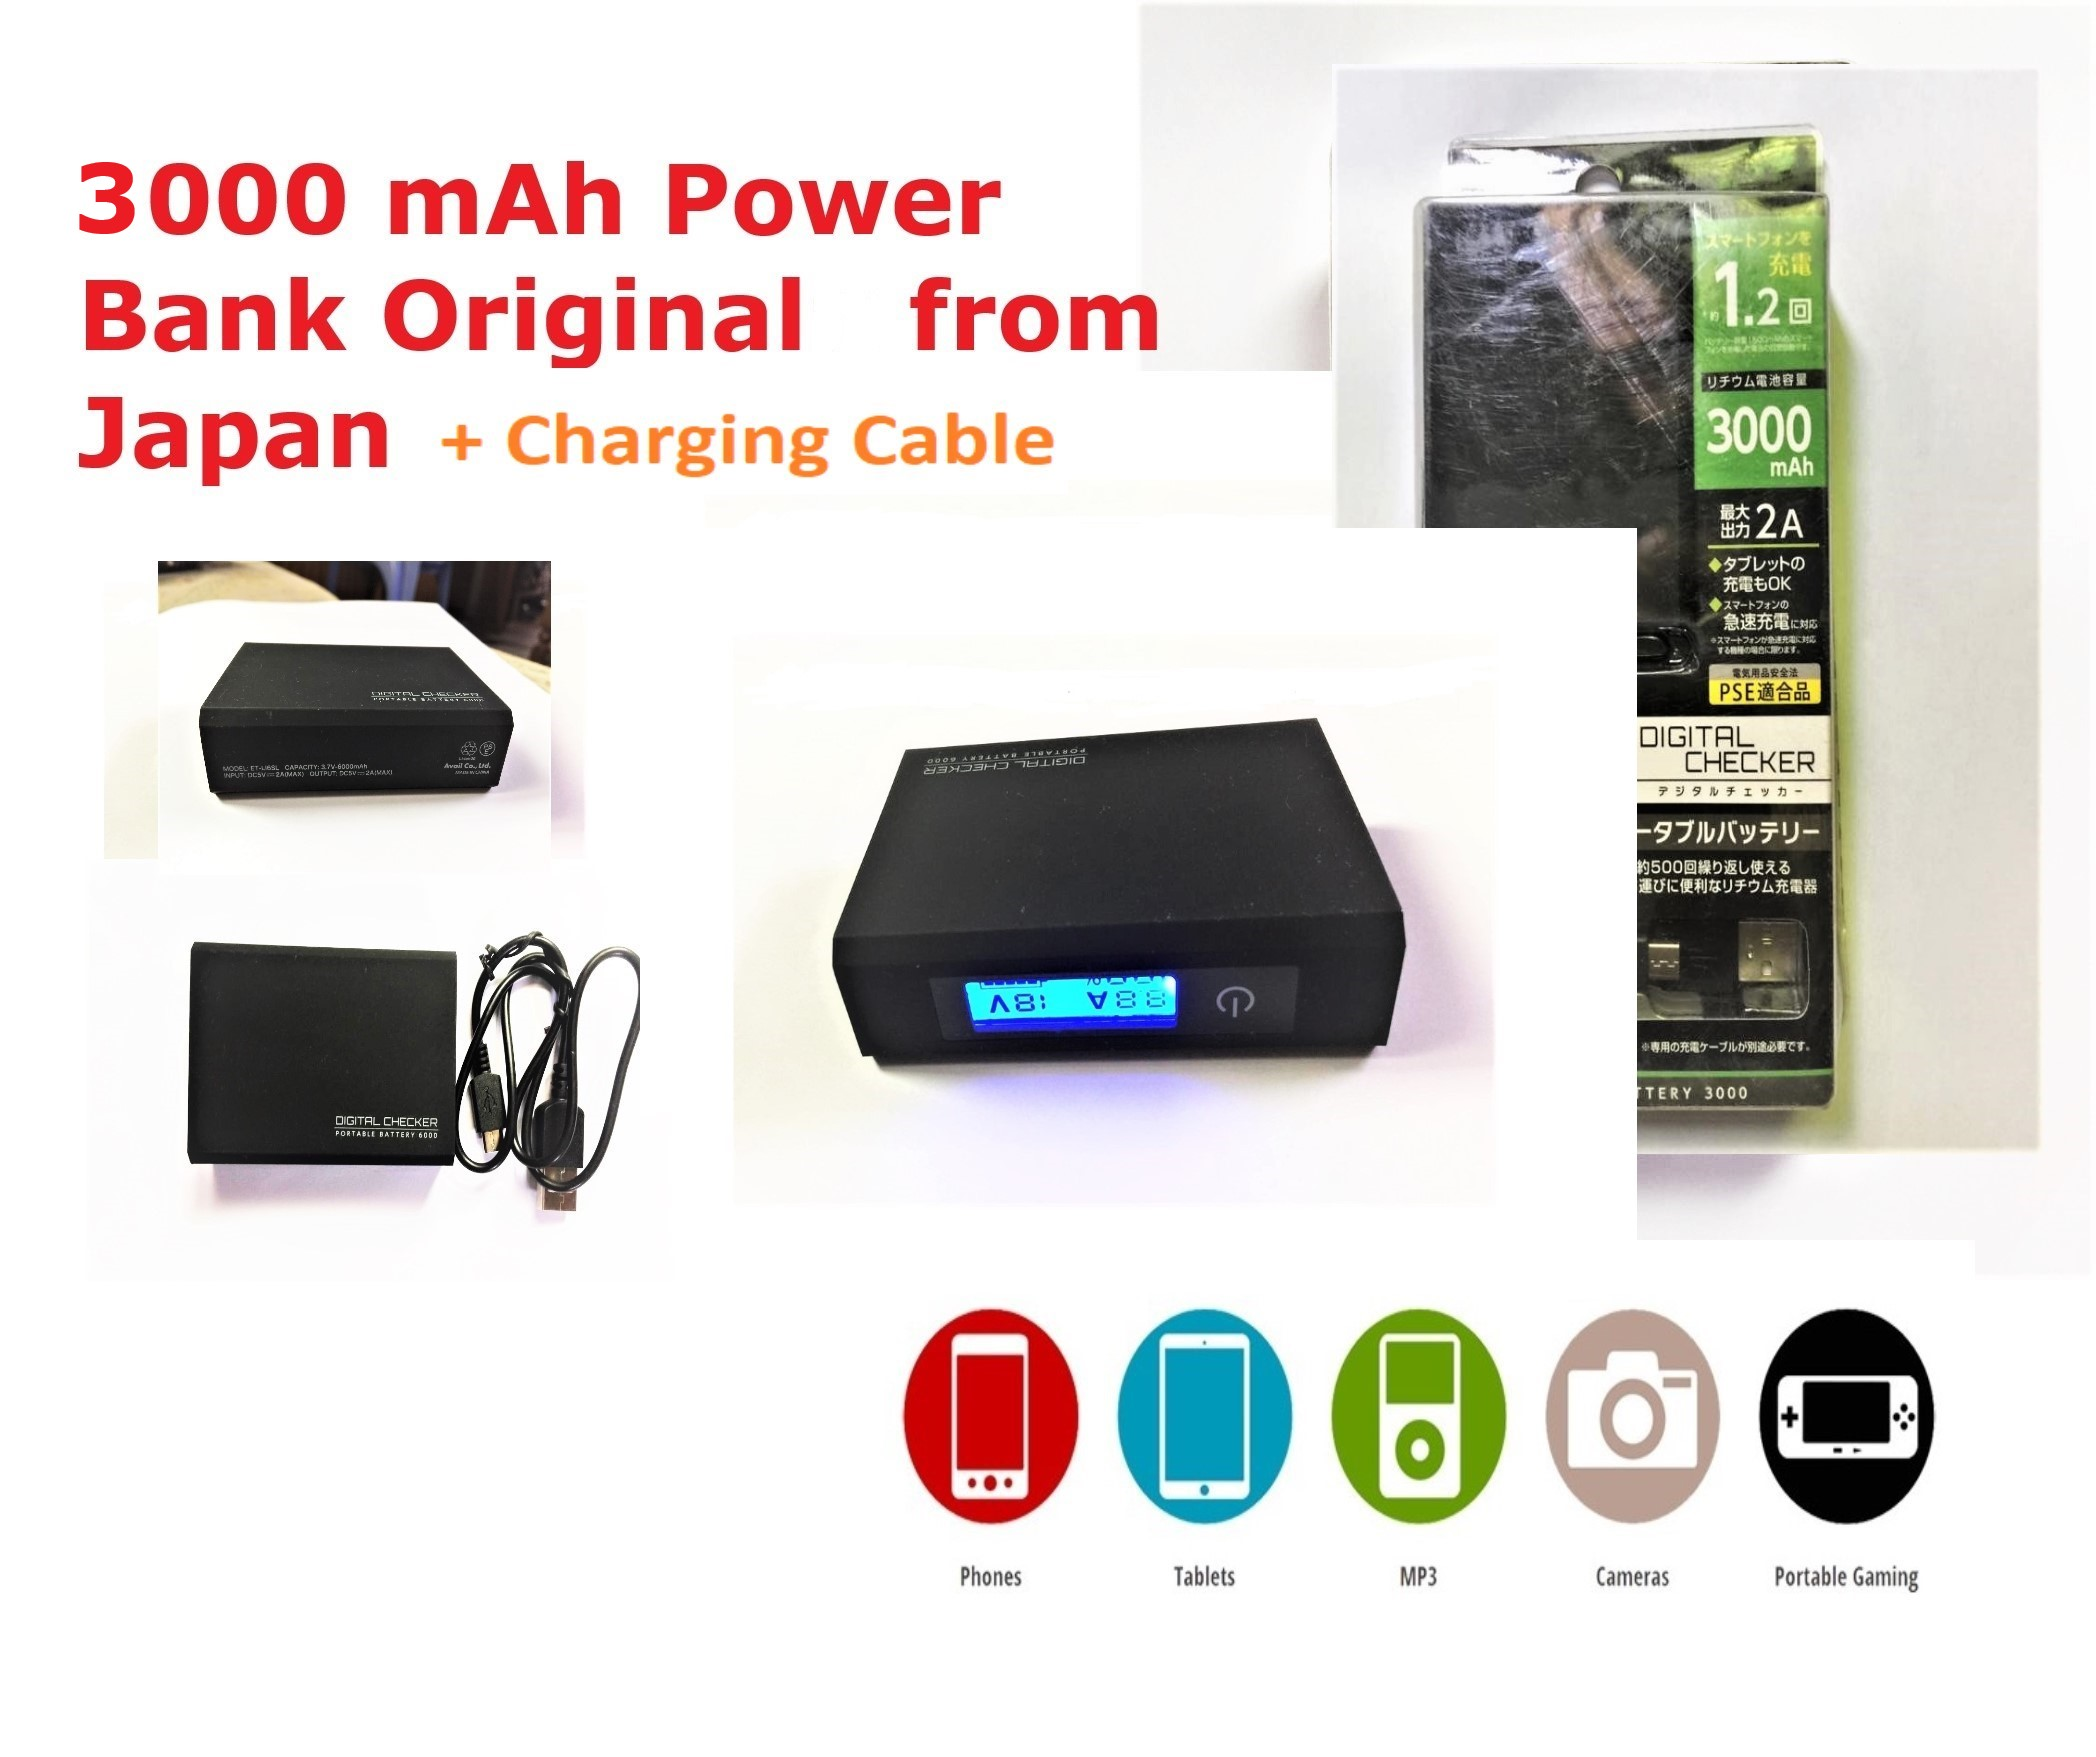 efu 3000 mAh Card size Powerbank Profeesional - Imported Power Bank with Premium Materials With Lithium Battery